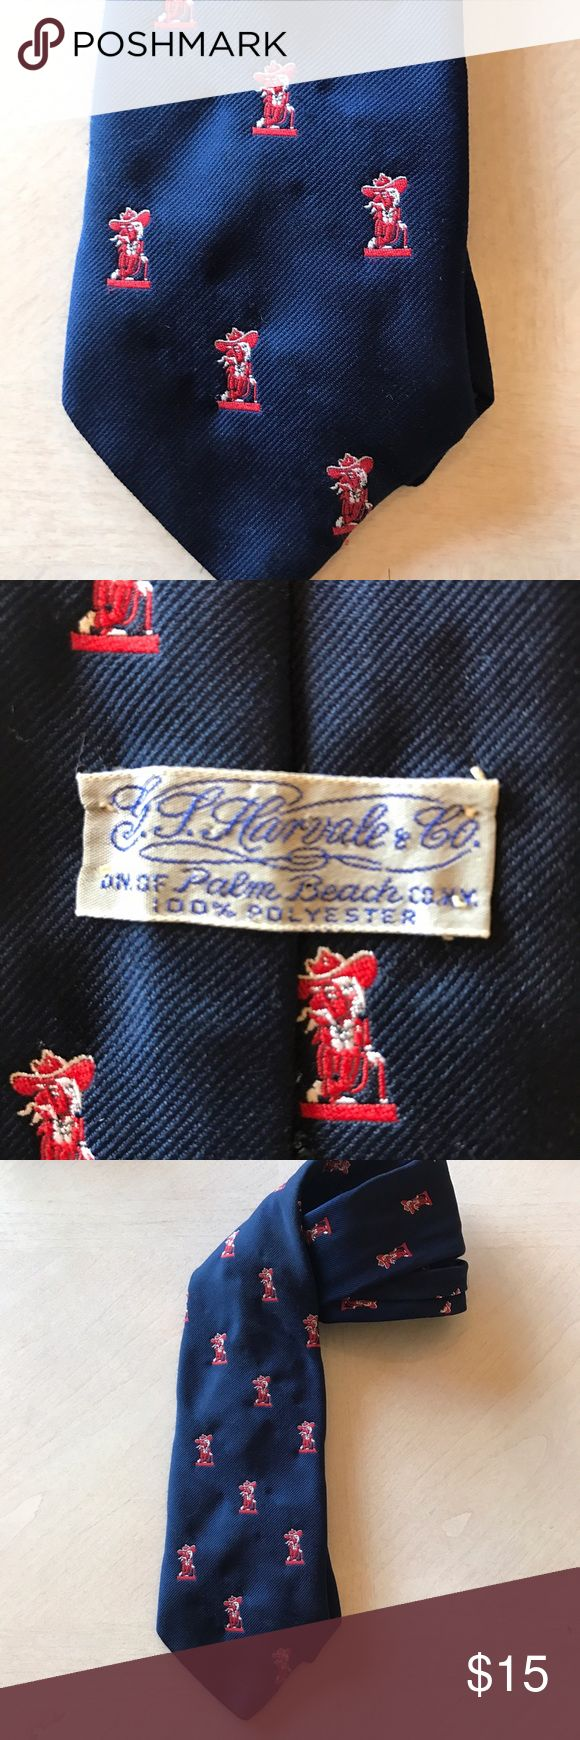 Ole Miss Rebel vintage mens tie made in Palm Beach Ole Miss Rebel vintage men's tie made in Palm Beach ole miss Accessories Ties